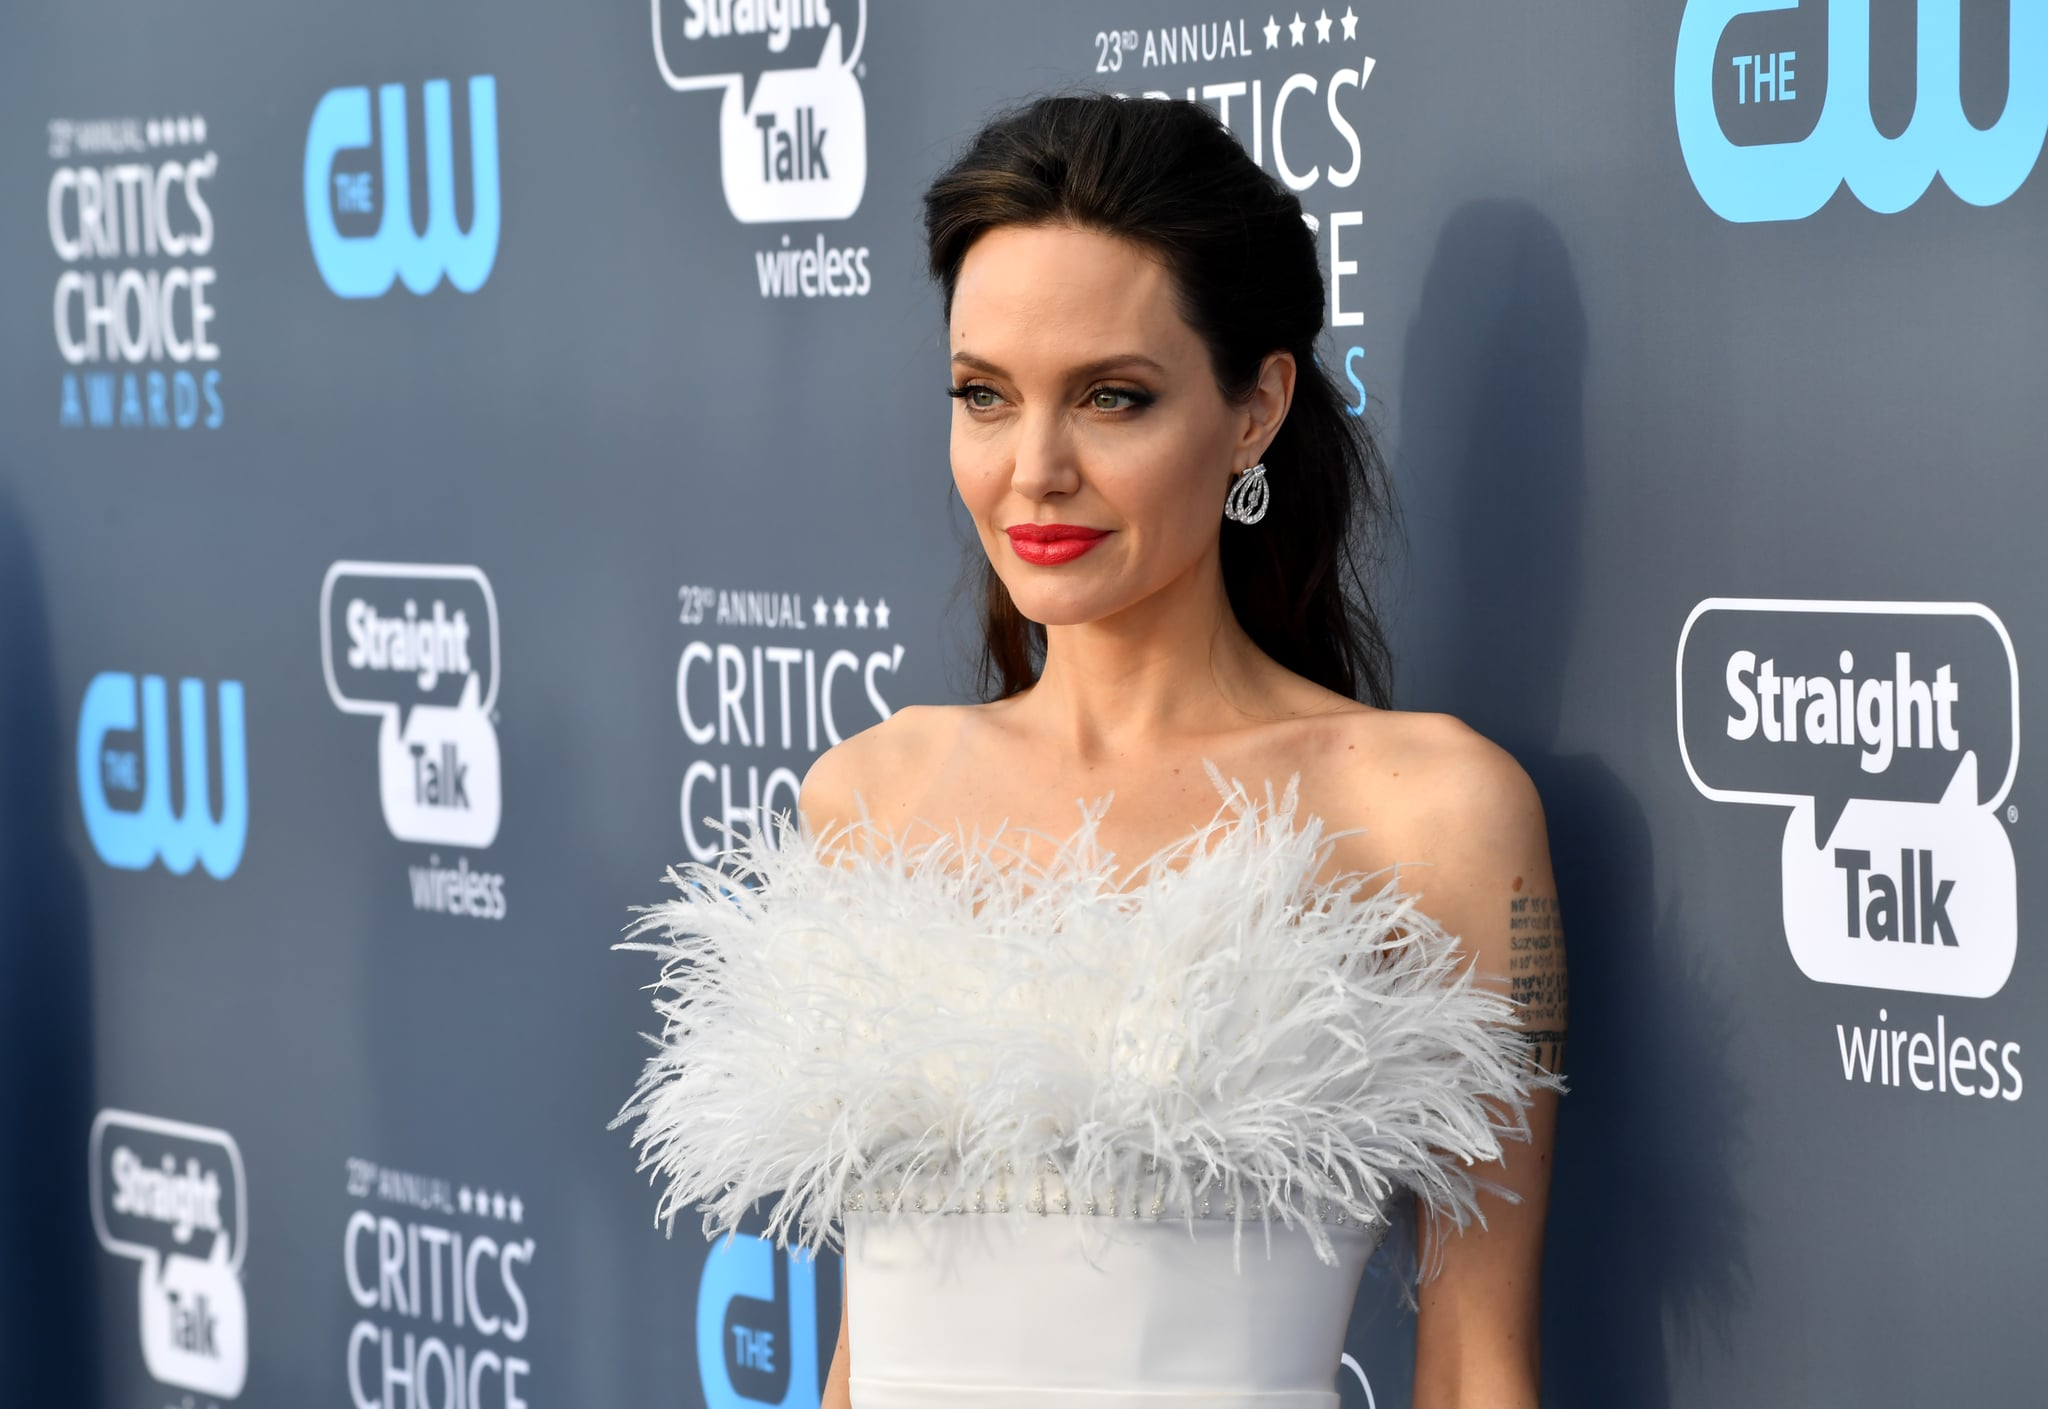 SANTA MONICA, CA - JANUARY 11: Actor/director Angelina Jolie attends The 23rd Annual Critics' Choice Awards at Barker Hangar on January 11, 2018 in Santa Monica, California.  (Photo by Jeff Kravitz/FilmMagic)